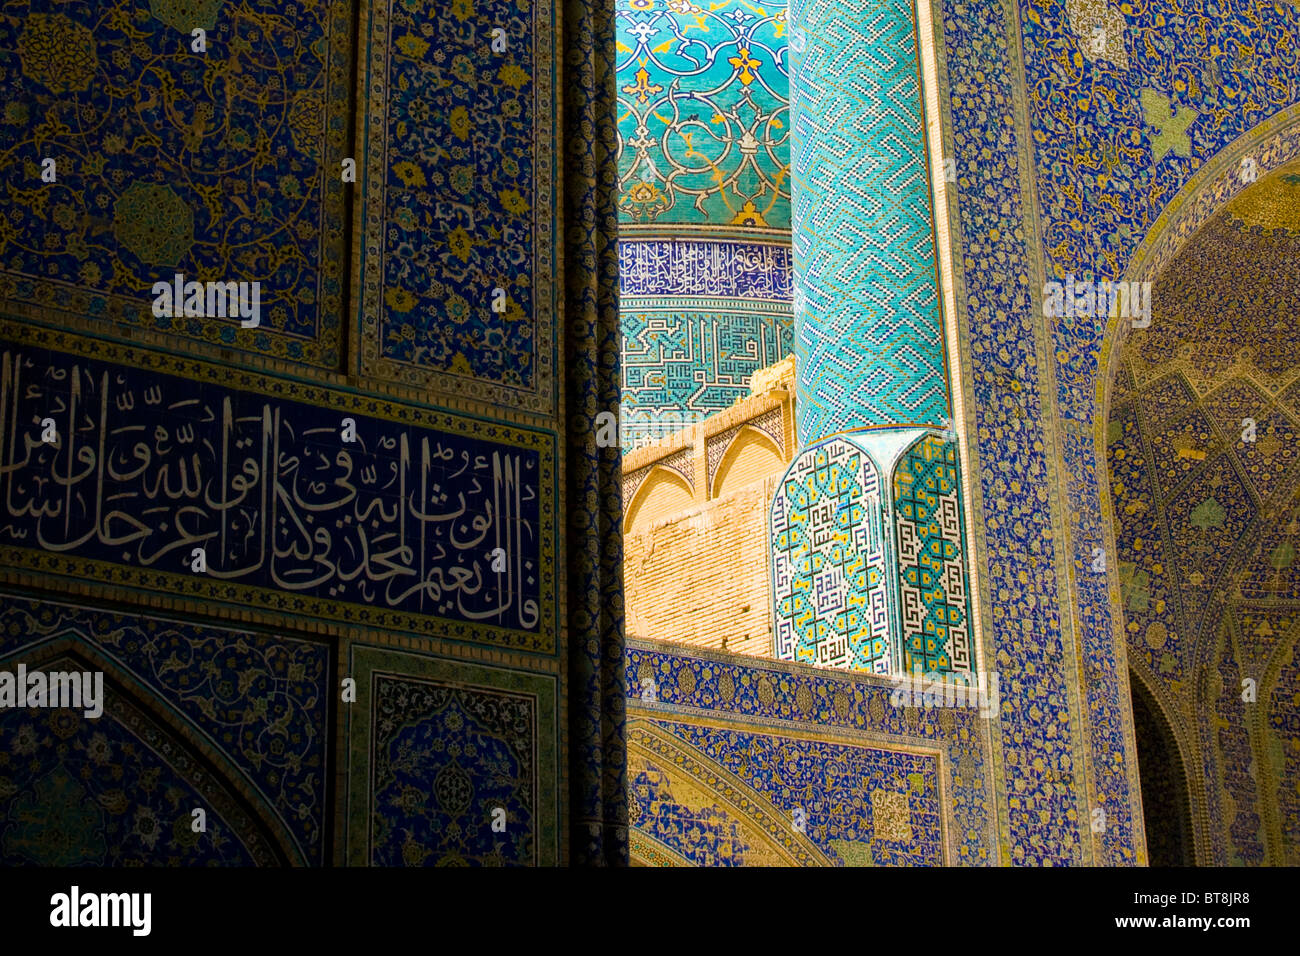 Imam or Shah Mosque, Esfahan, Iran - Stock Image